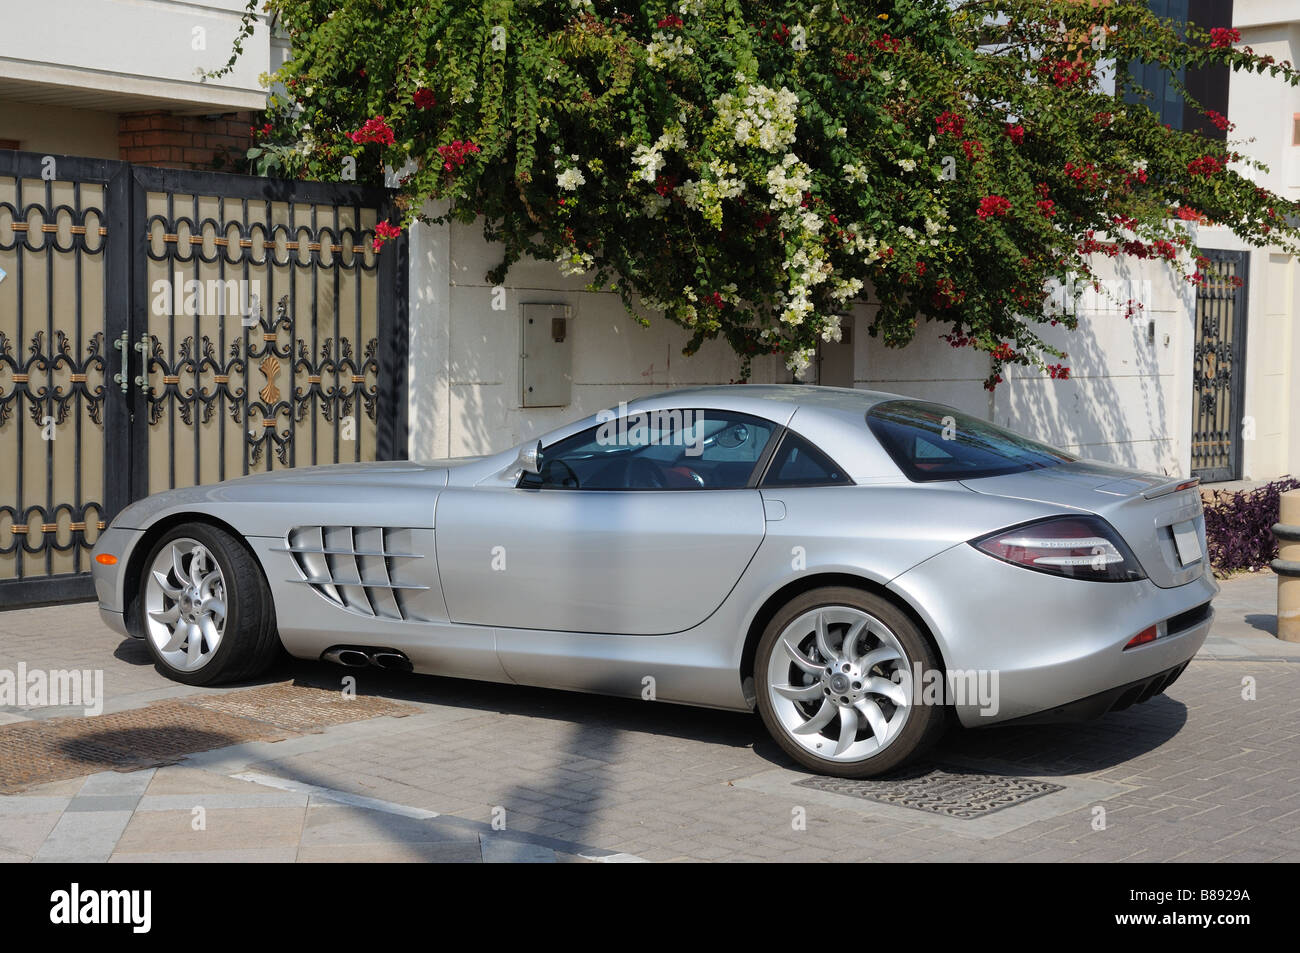 Luxury Sports Car Mercedes Benz Slr Mclaren In Dubai Stock Photo Alamy